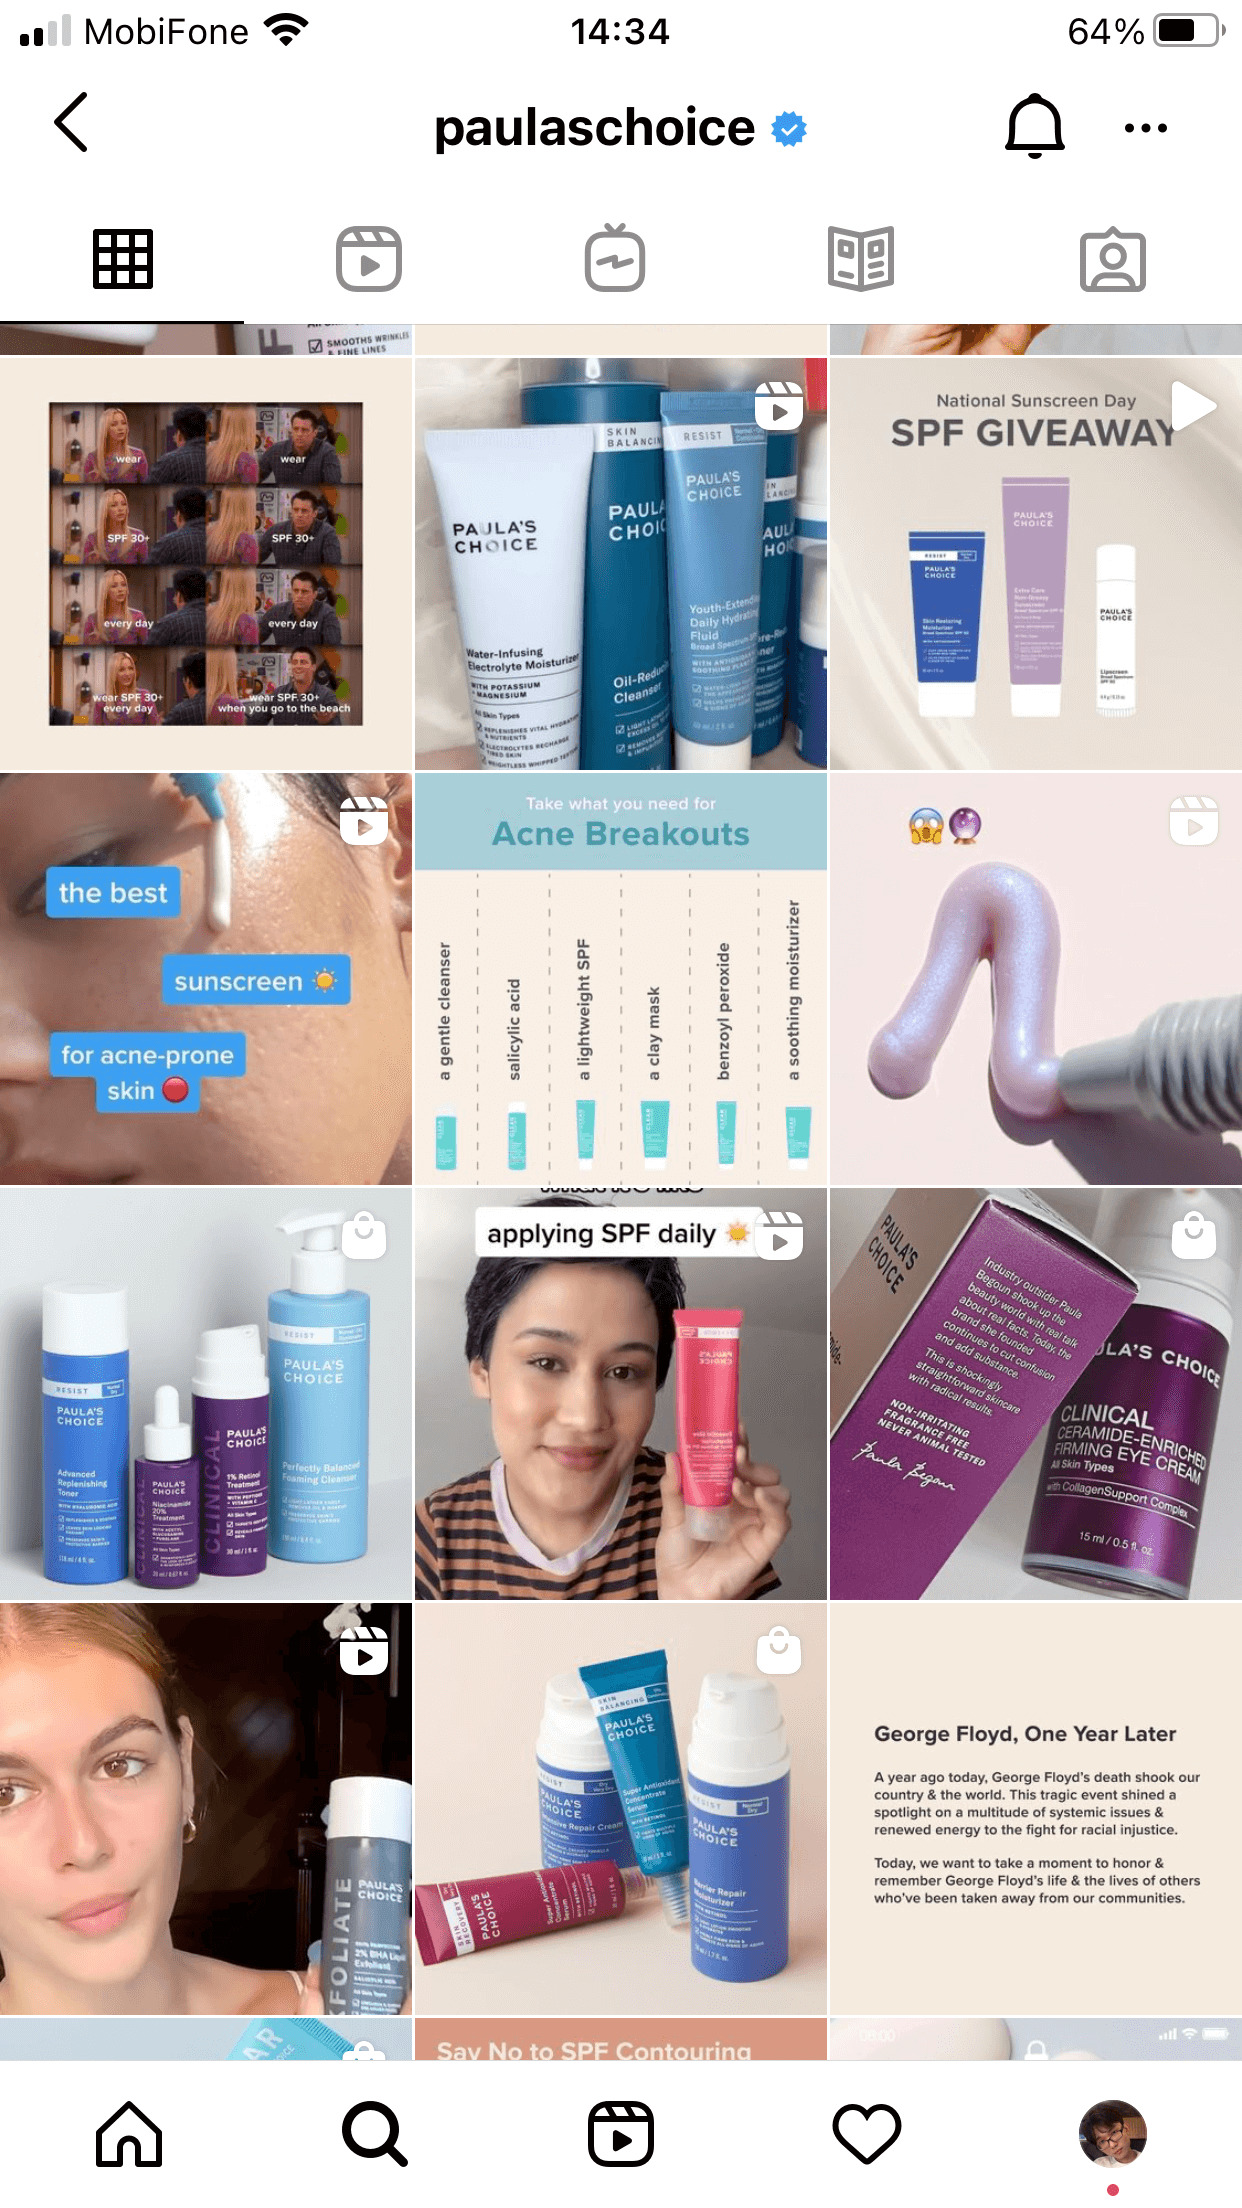 Paula's Choice usually uses these short videos to give audience a sneak peek of their products